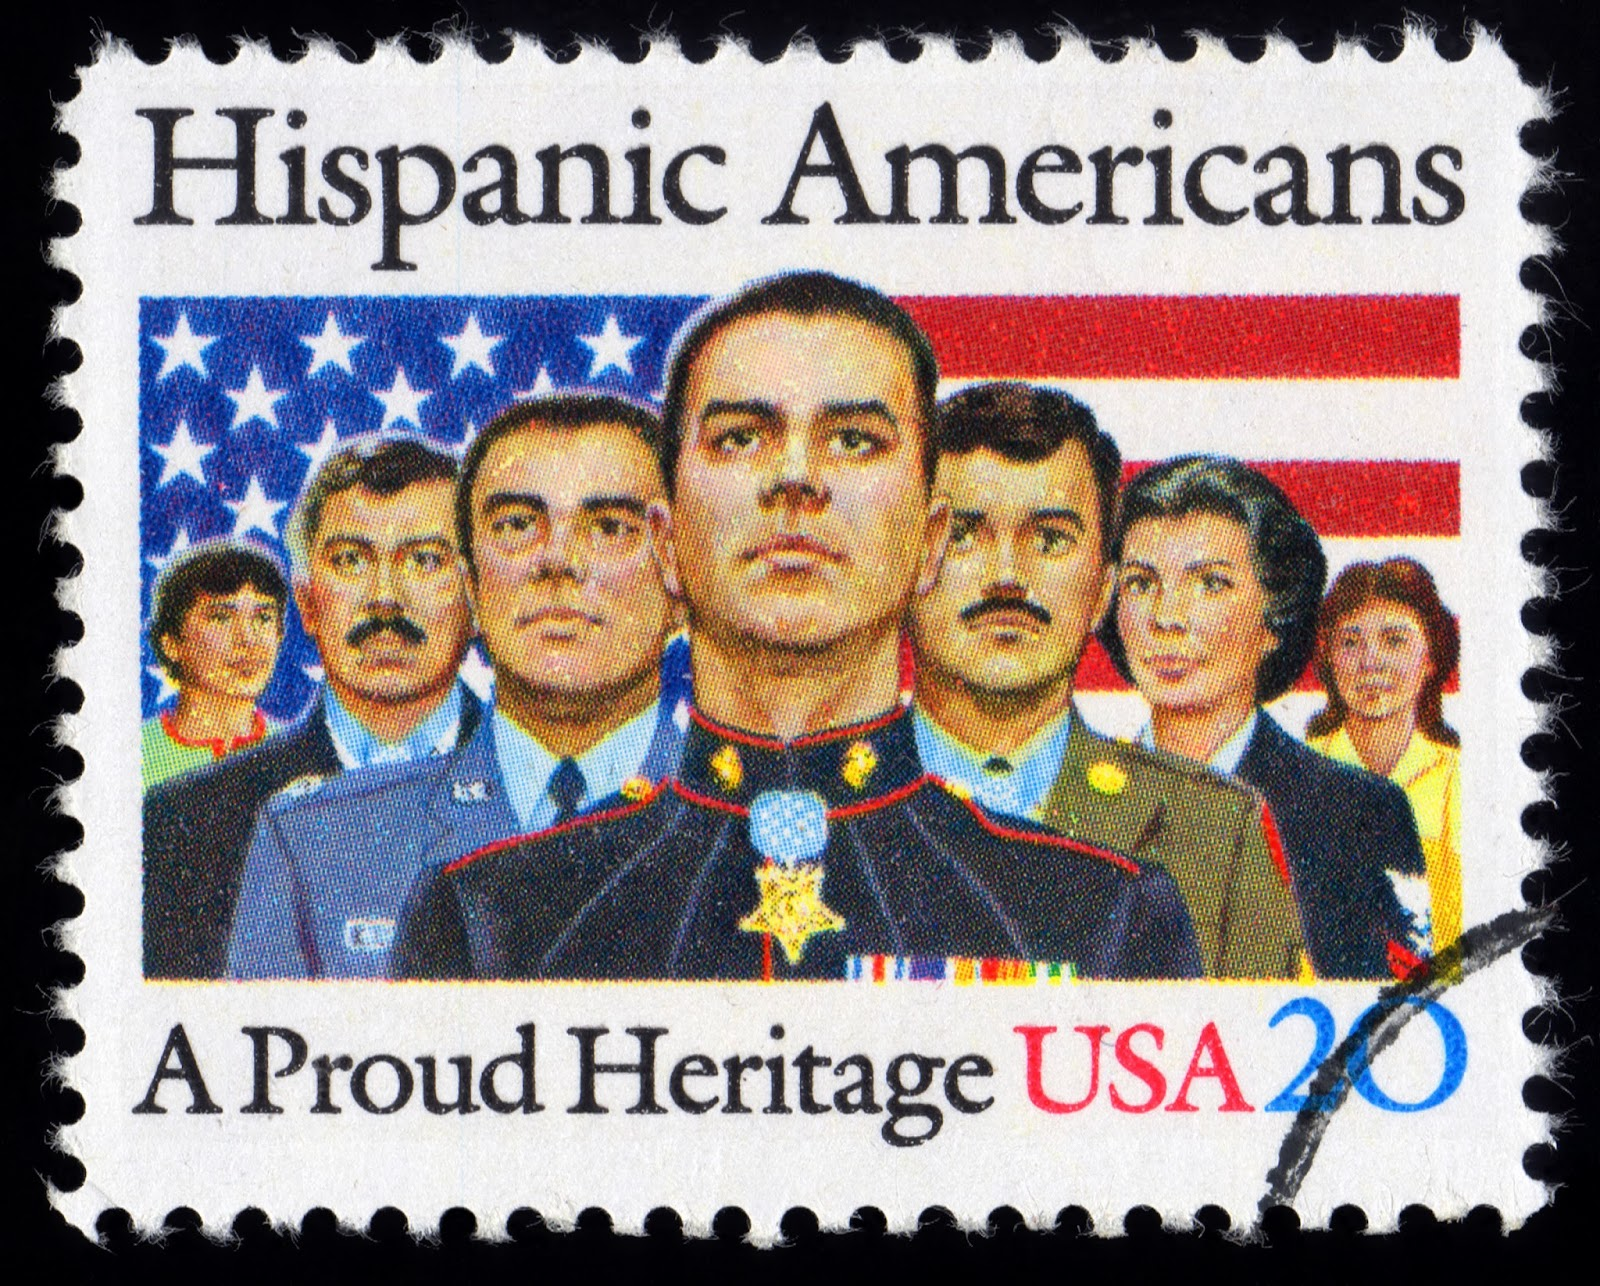 spanish heritage The hispanic heritage foundation identifies, inspires, prepares, and connects latino leaders in the community, classroom, and workforce.